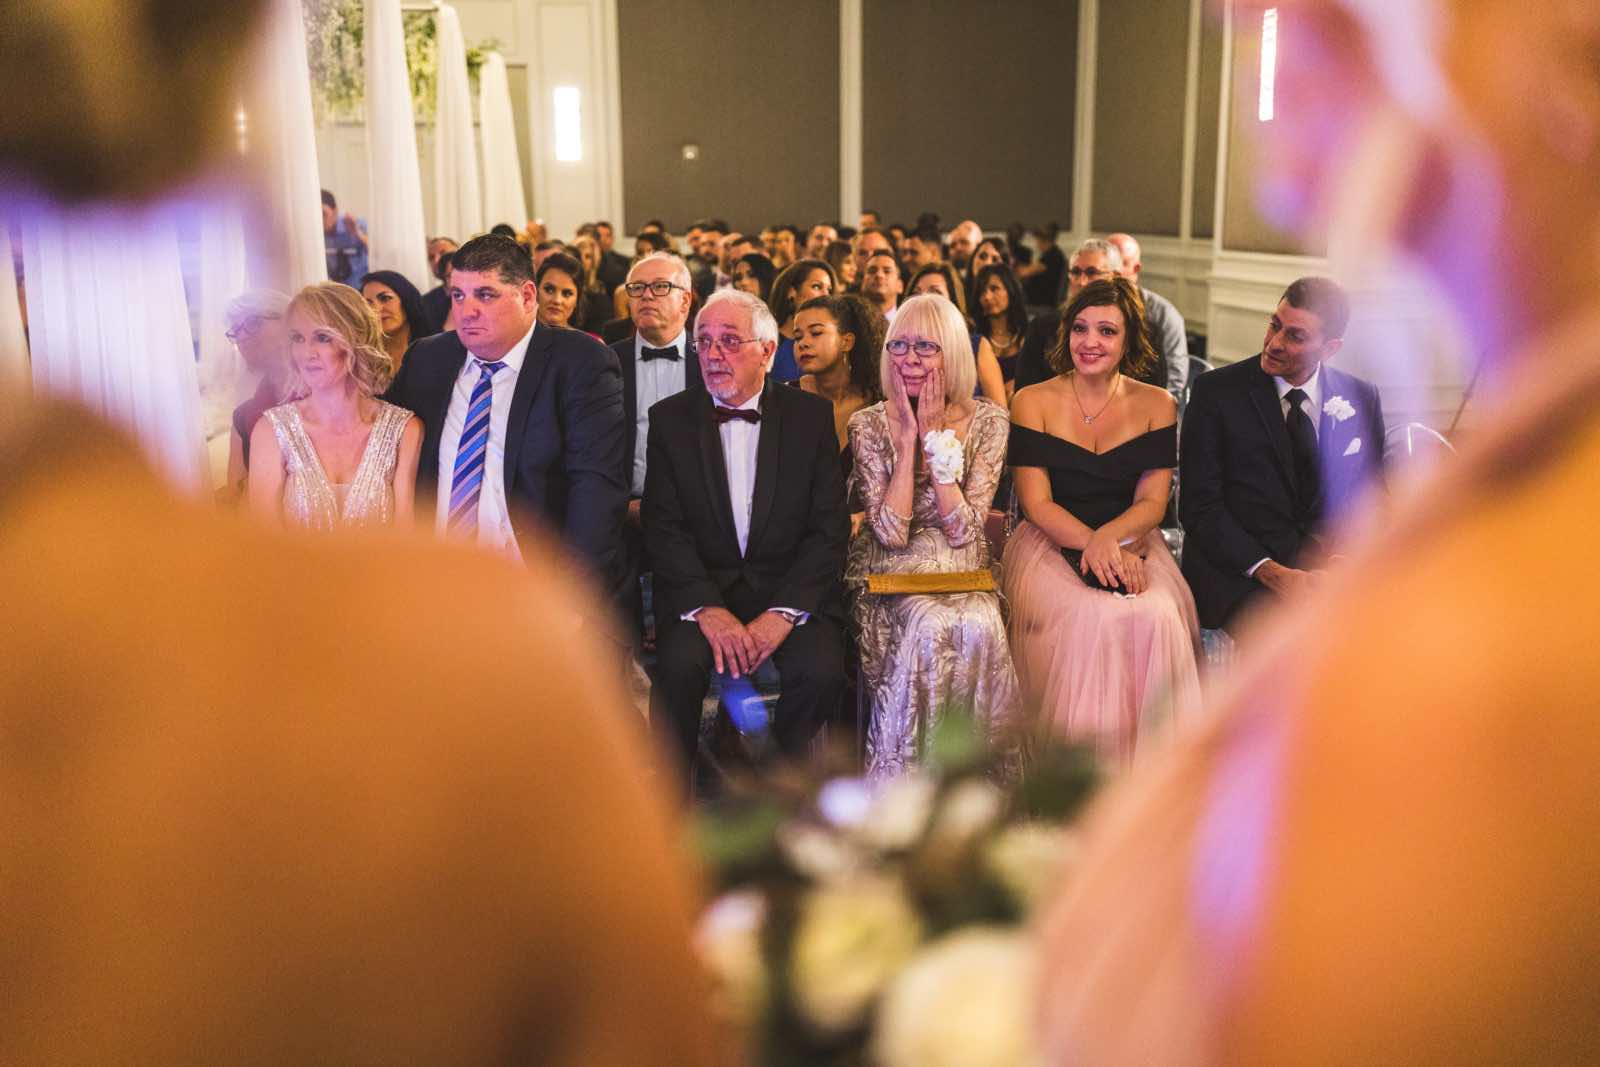 Ivory and Gold Wedding at the Ritz Carlton wedding a chair affair Sarasota Guests